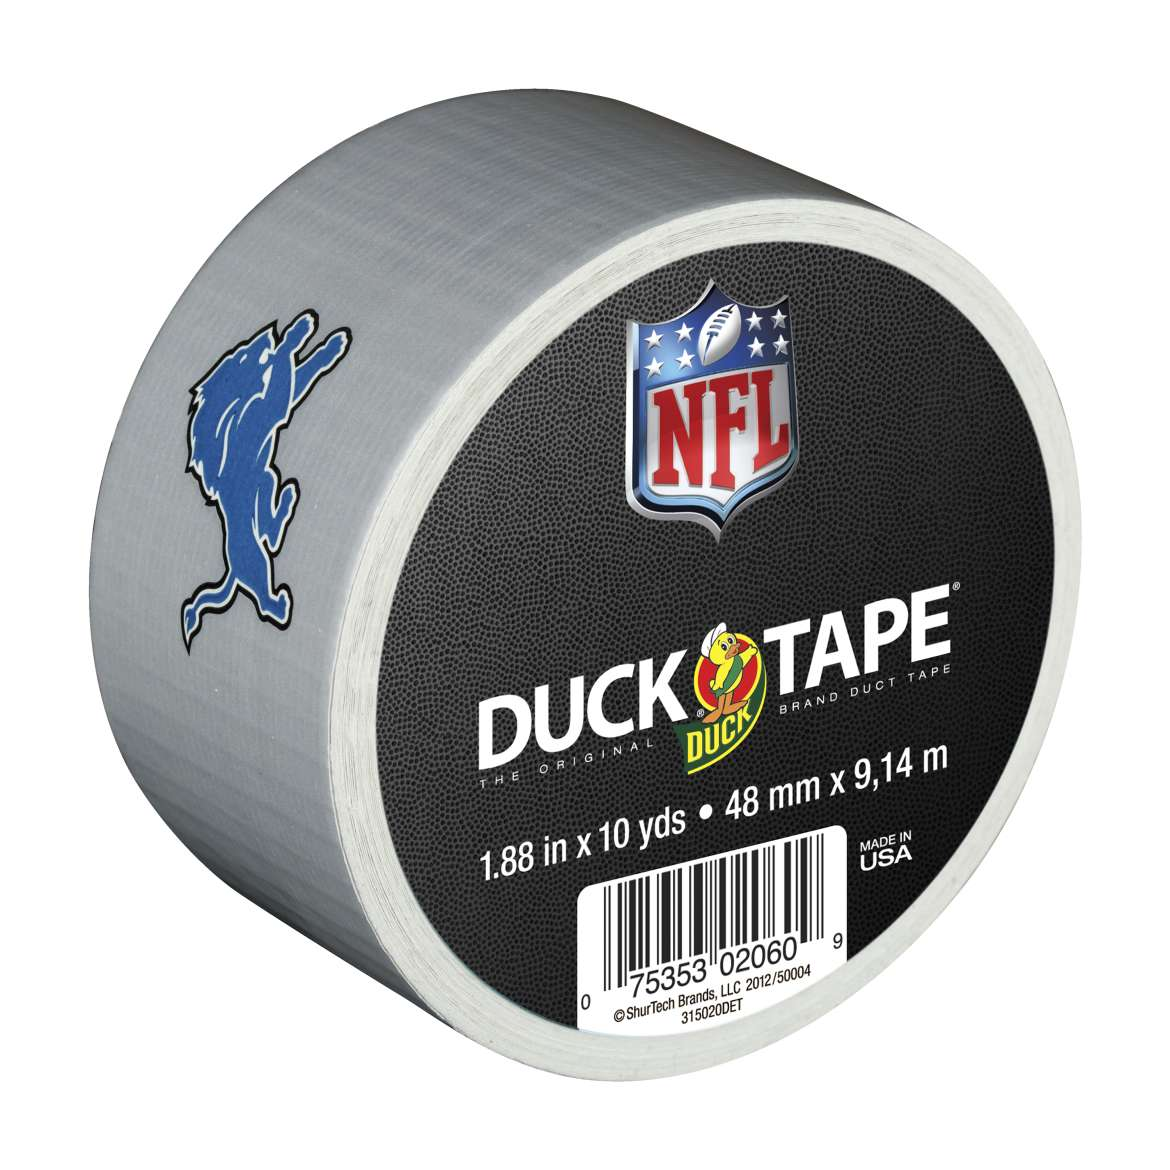 "Duck Brand Duct Tape, NFL Duck Tape, 1.88"" x 10 yard, Detroit Lions"